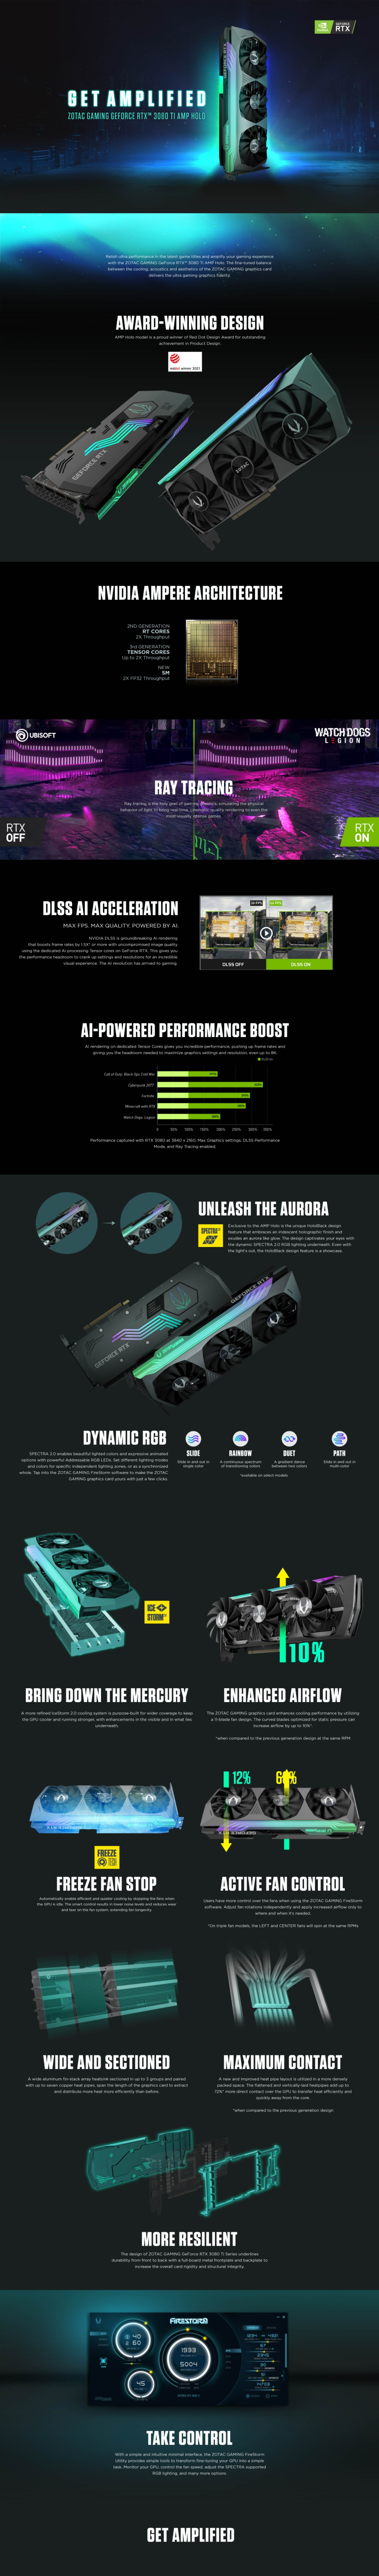 A large marketing image providing additional information about the product ZOTAC GAMING GeForce RTX 3080 Ti AMP Holo 12GB GDDR6X - Additional alt info not provided